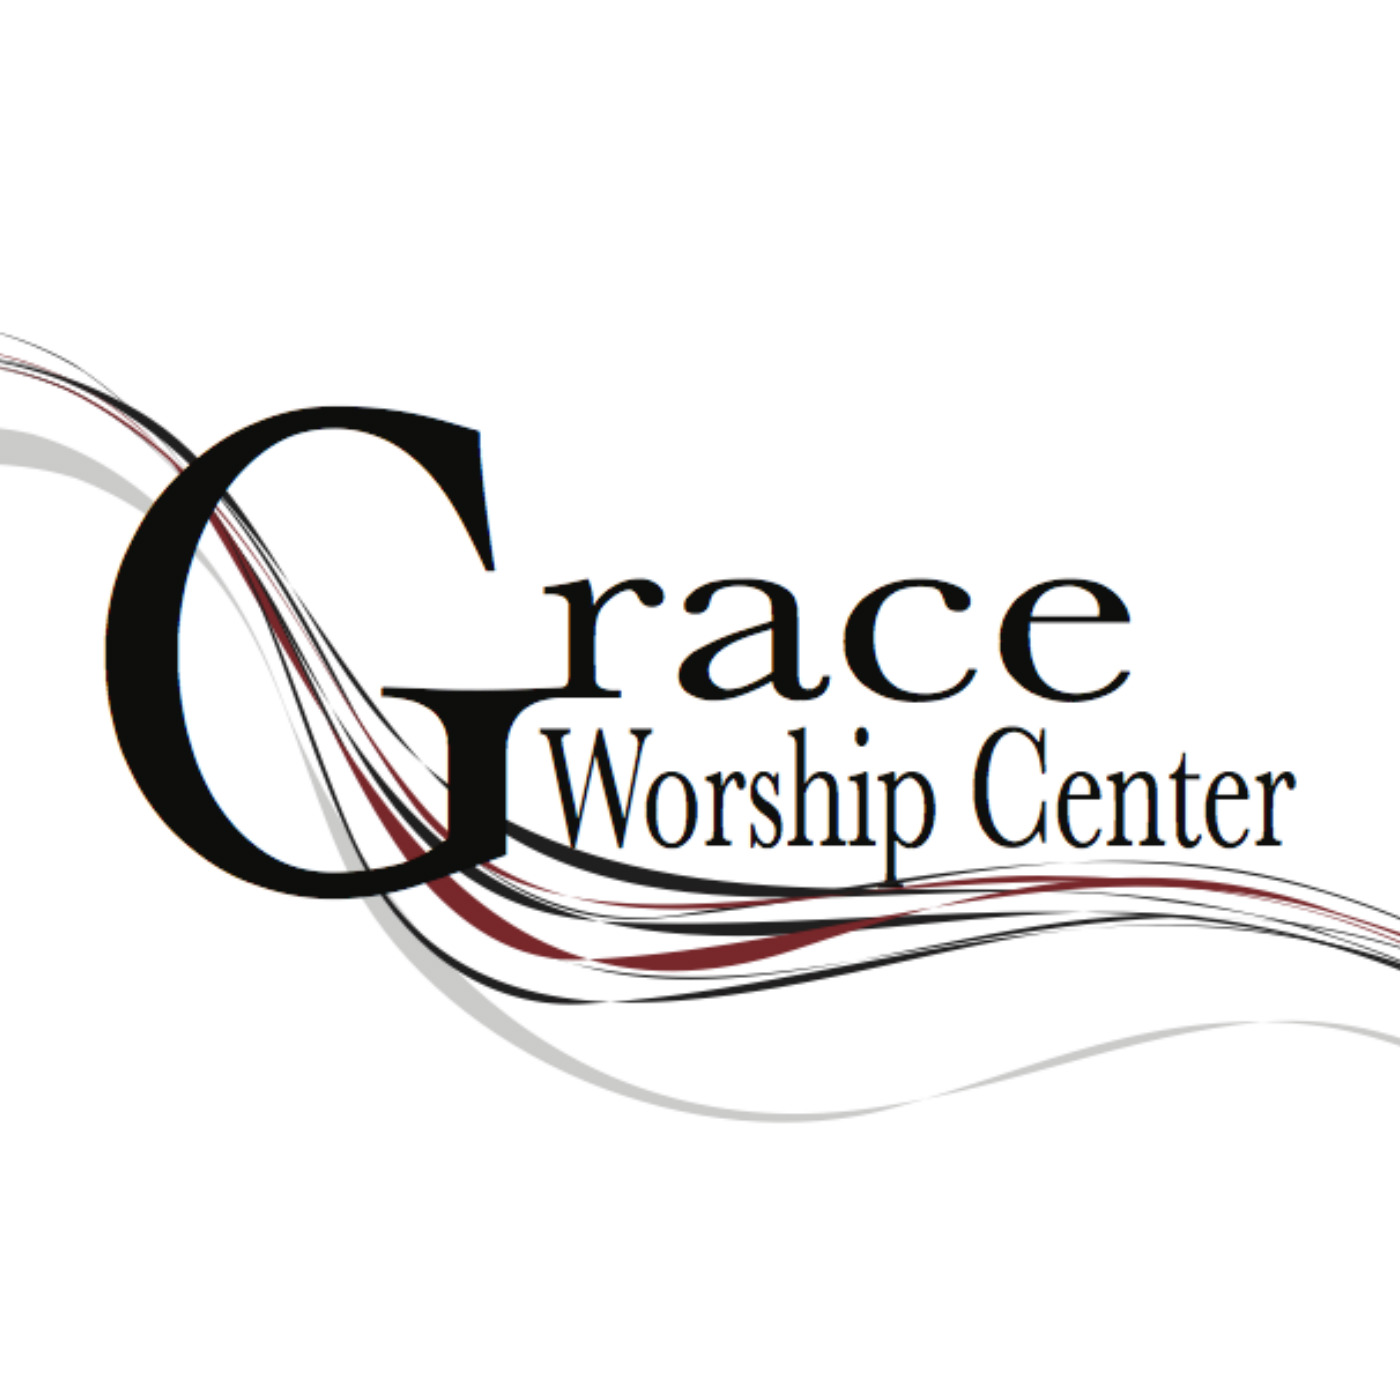 Grace Worship Center